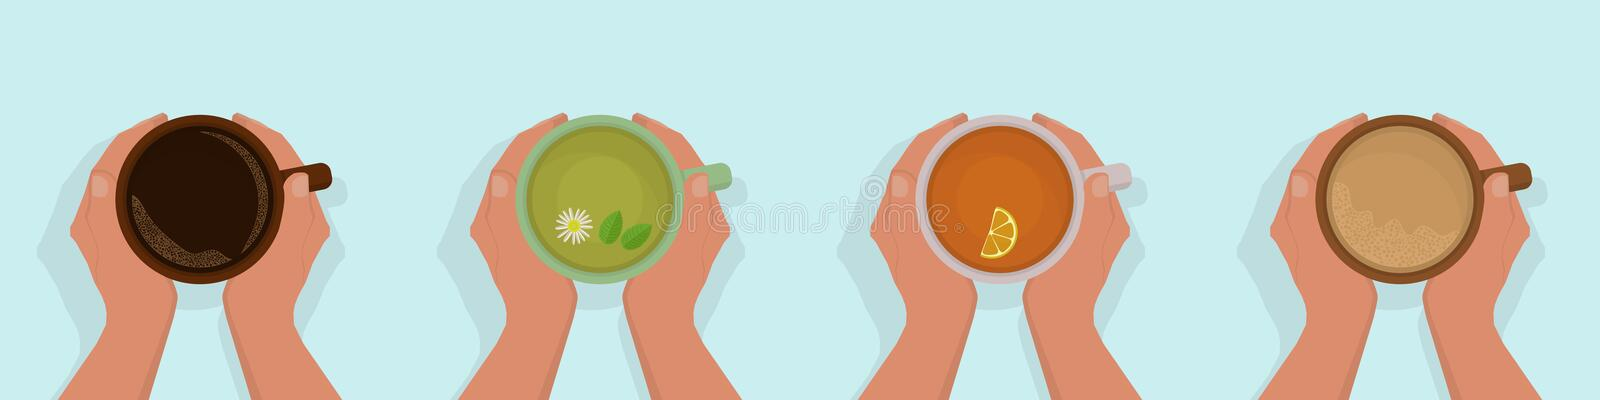 Set of four options logo women`s hands holding a cup royalty free stock photos